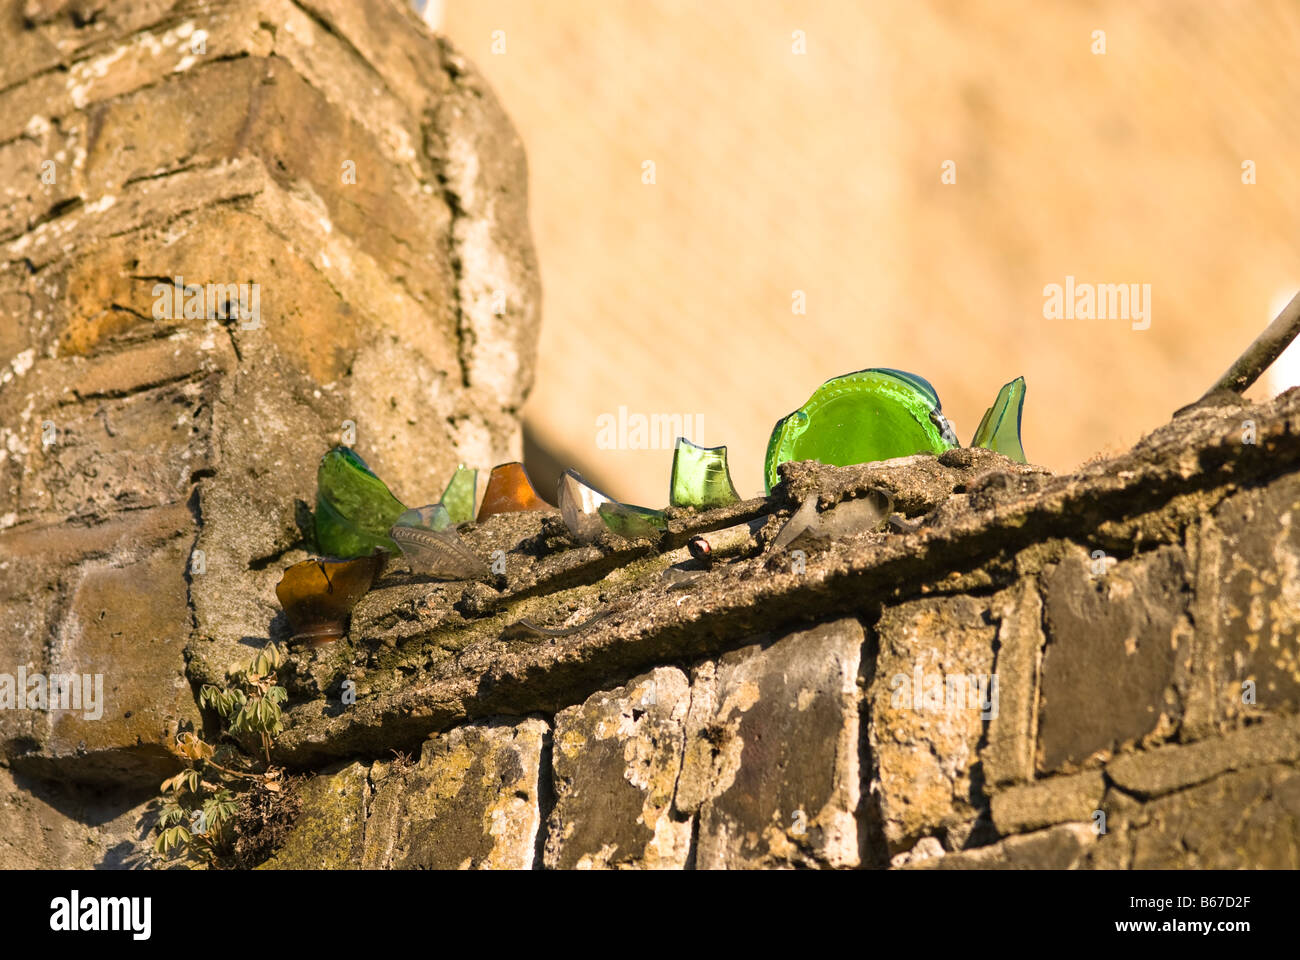 Wall With Glass Shards Stock Photos & Wall With Glass Shards Stock ...